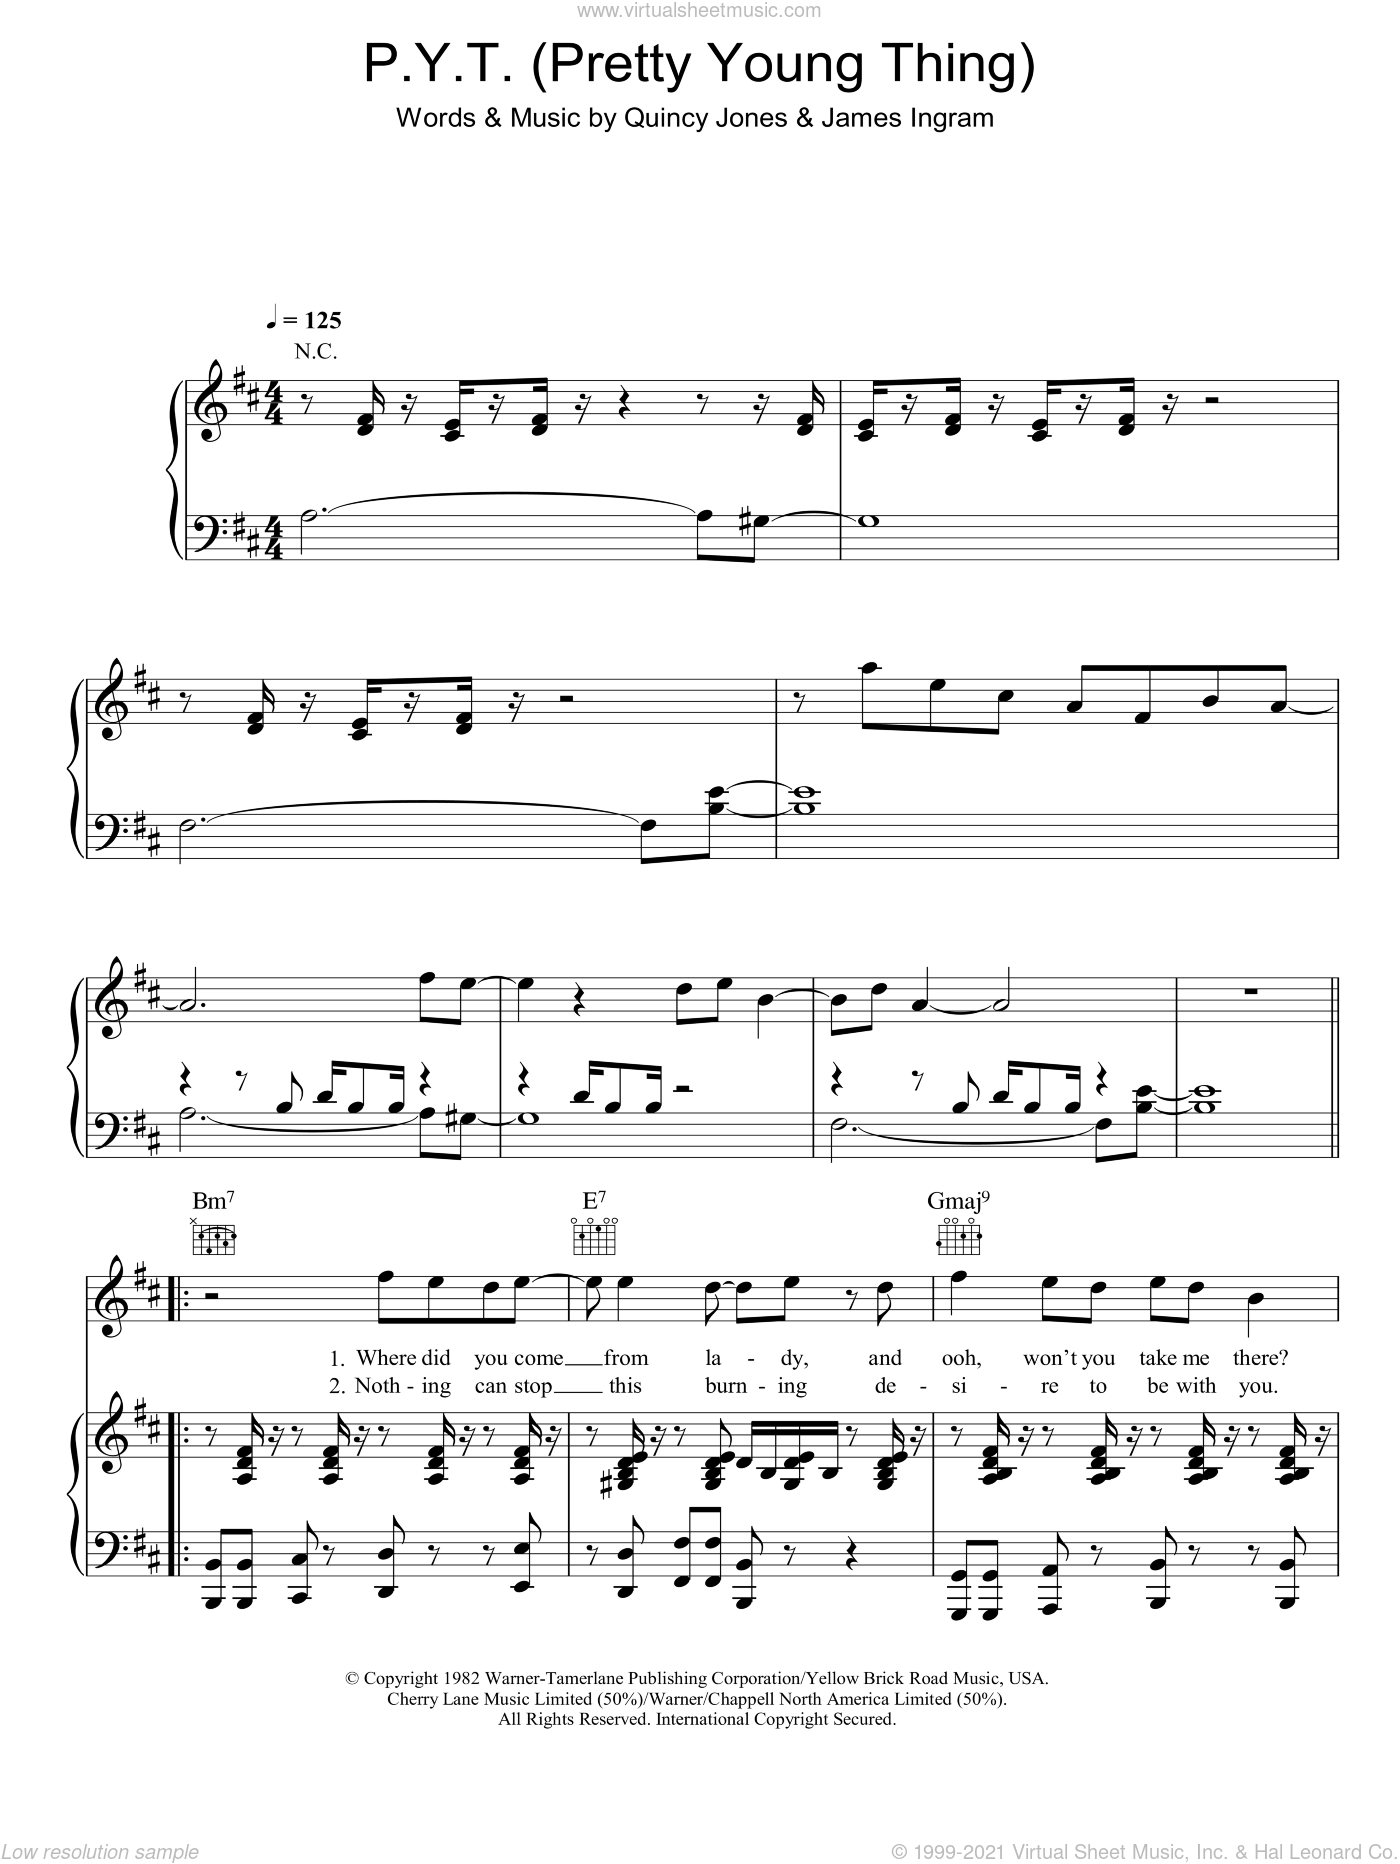 P.Y.T. (Pretty Young Thing) sheet music for voice, piano or guitar by James Ingram, Michael Jackson and Quincy Jones